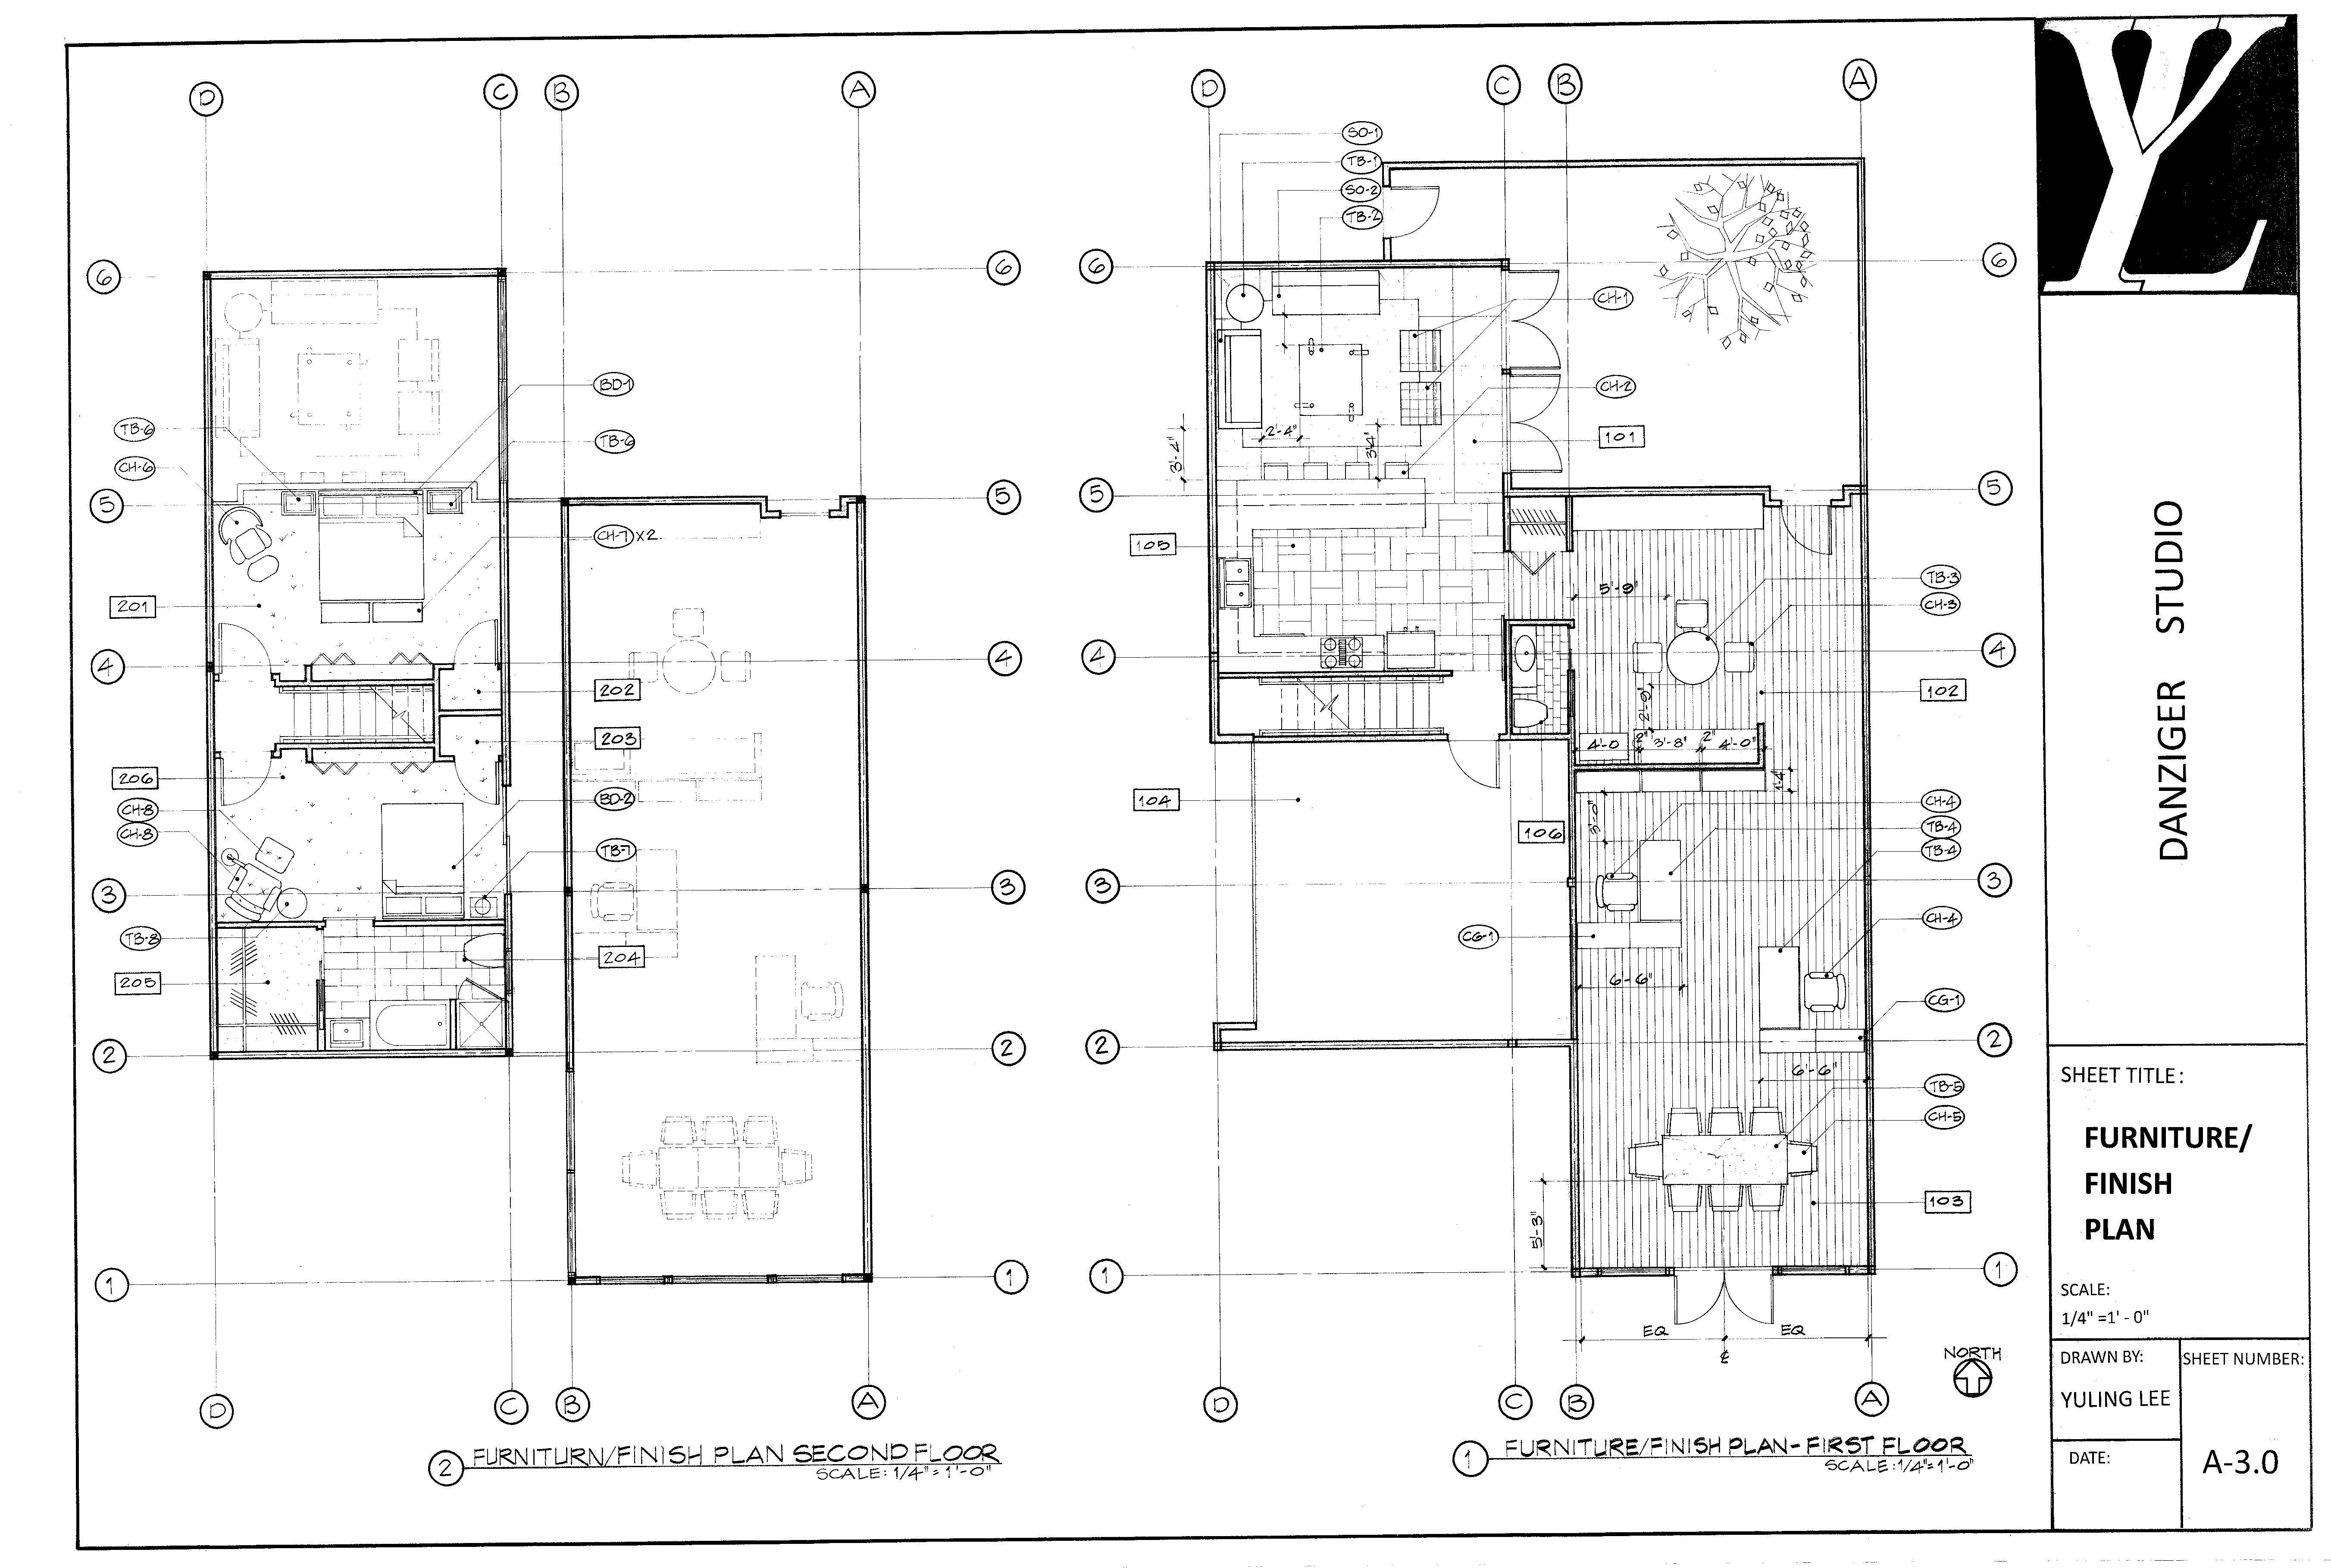 ID 22 Design Drawing For Interior Design ...